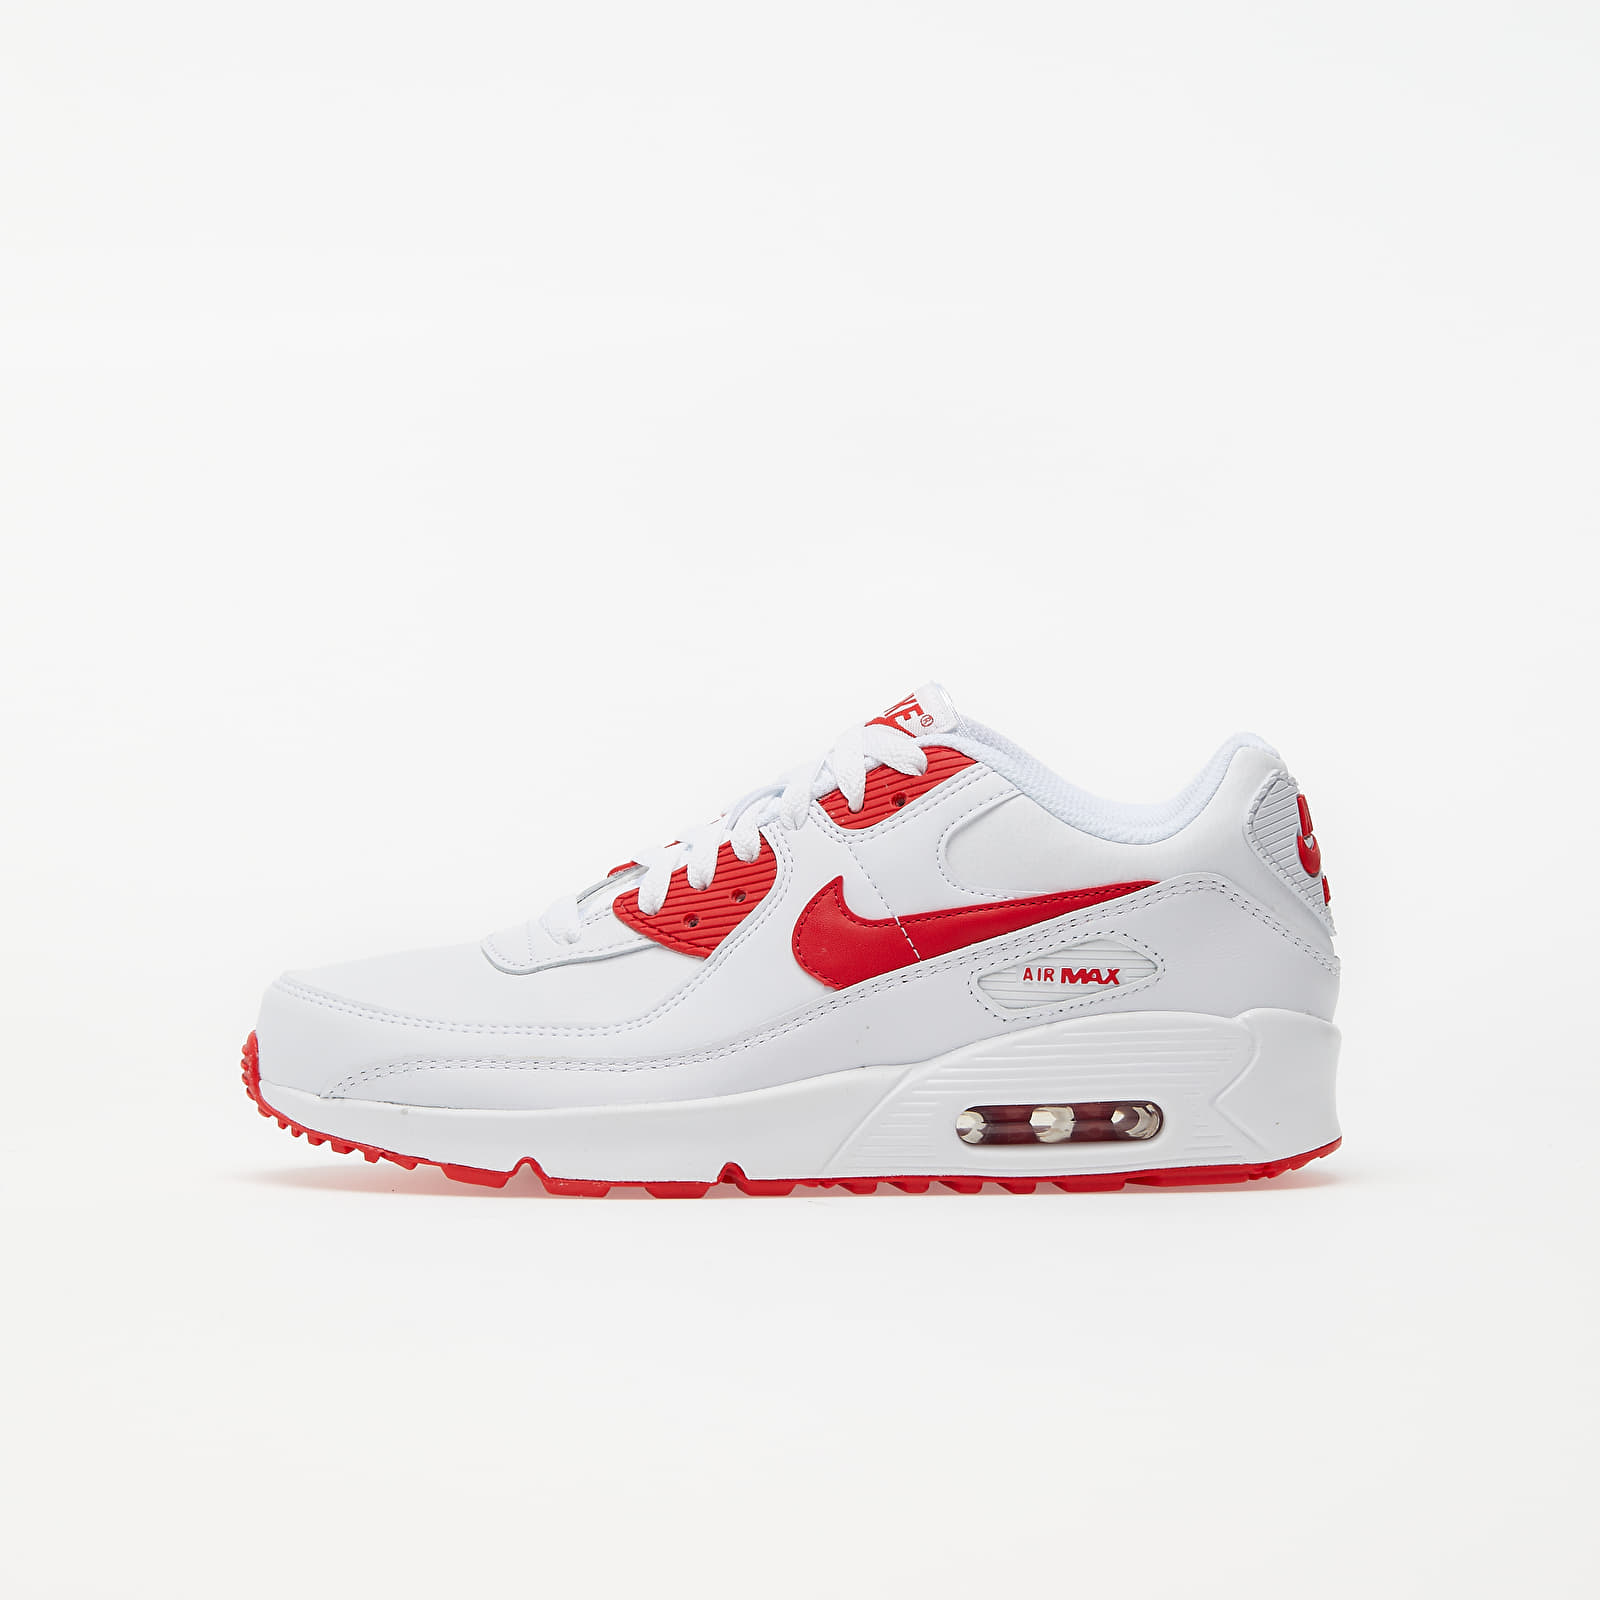 Nike Air Max 90 Leather (GS) White/ Hyper Red-Black EUR 40